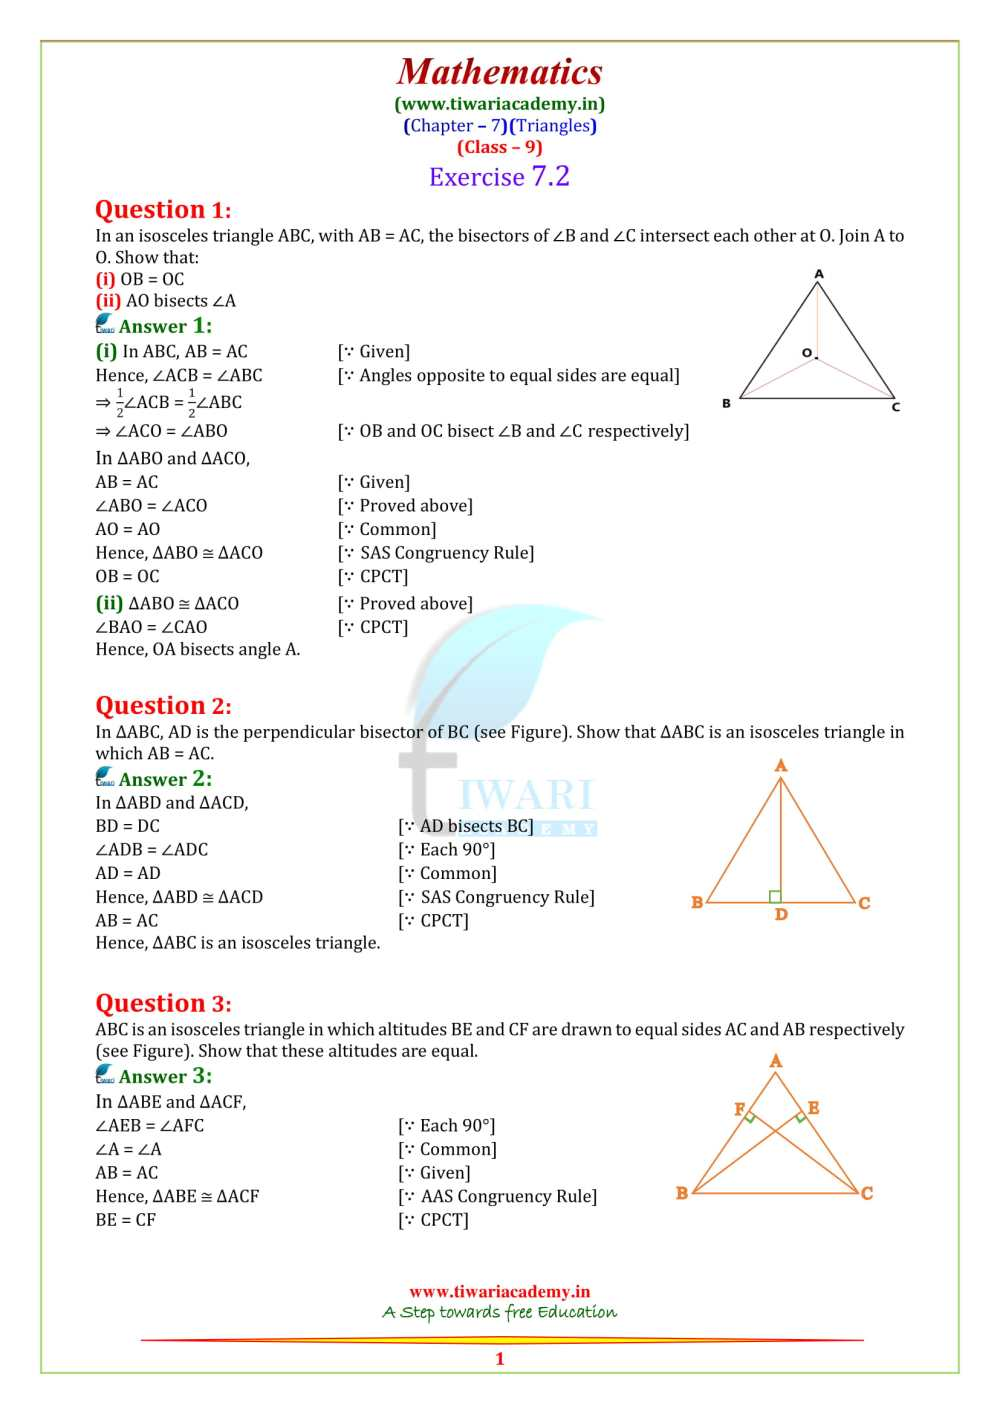 medium resolution of NCERT Solutions for Class 9 Maths Chapter 7 Triangles Exercise 7.1 - 7.5